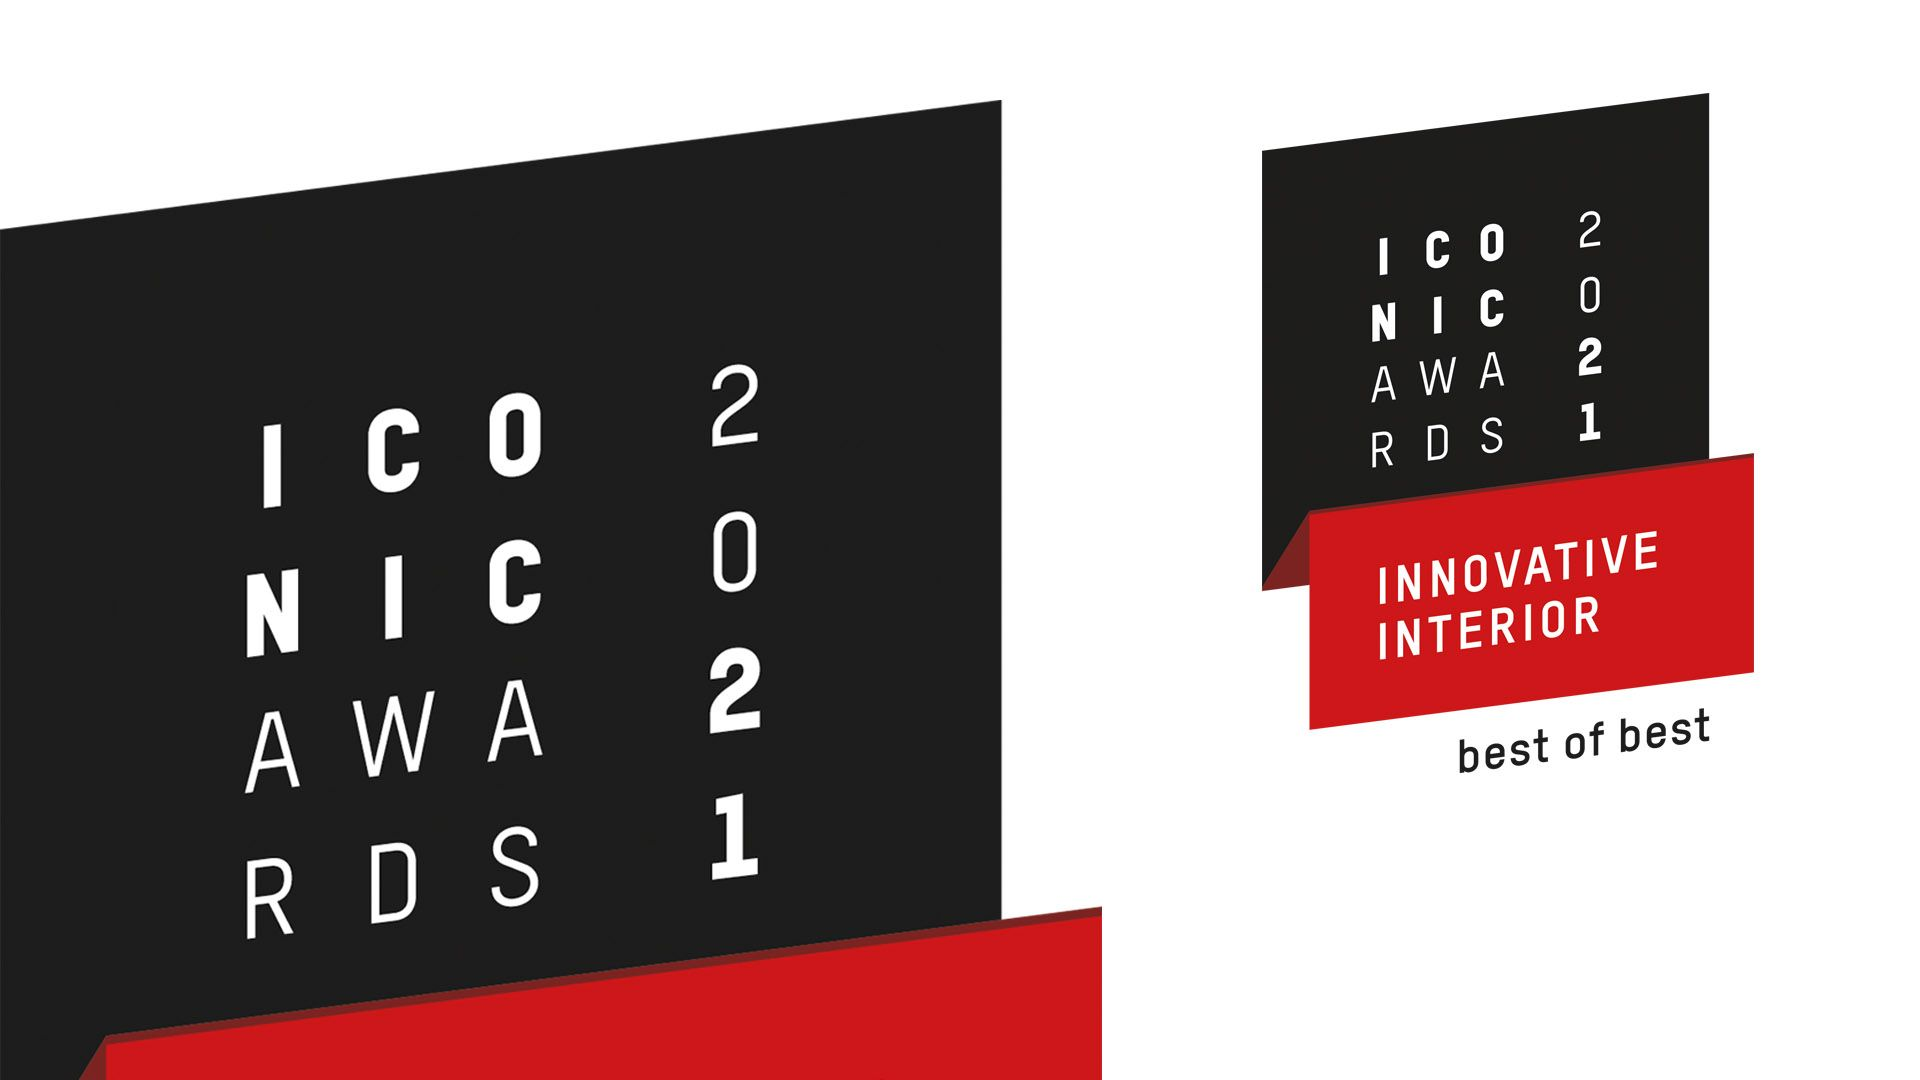 Iconic Awards 2021: Innovative Interior